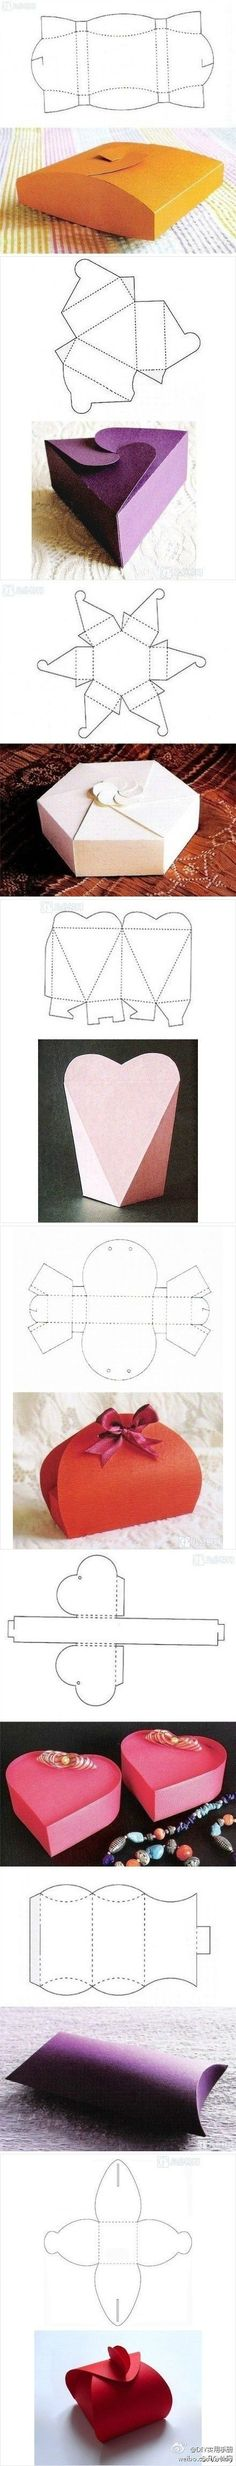 Homemade boxes good dIY gift box templates by amarige